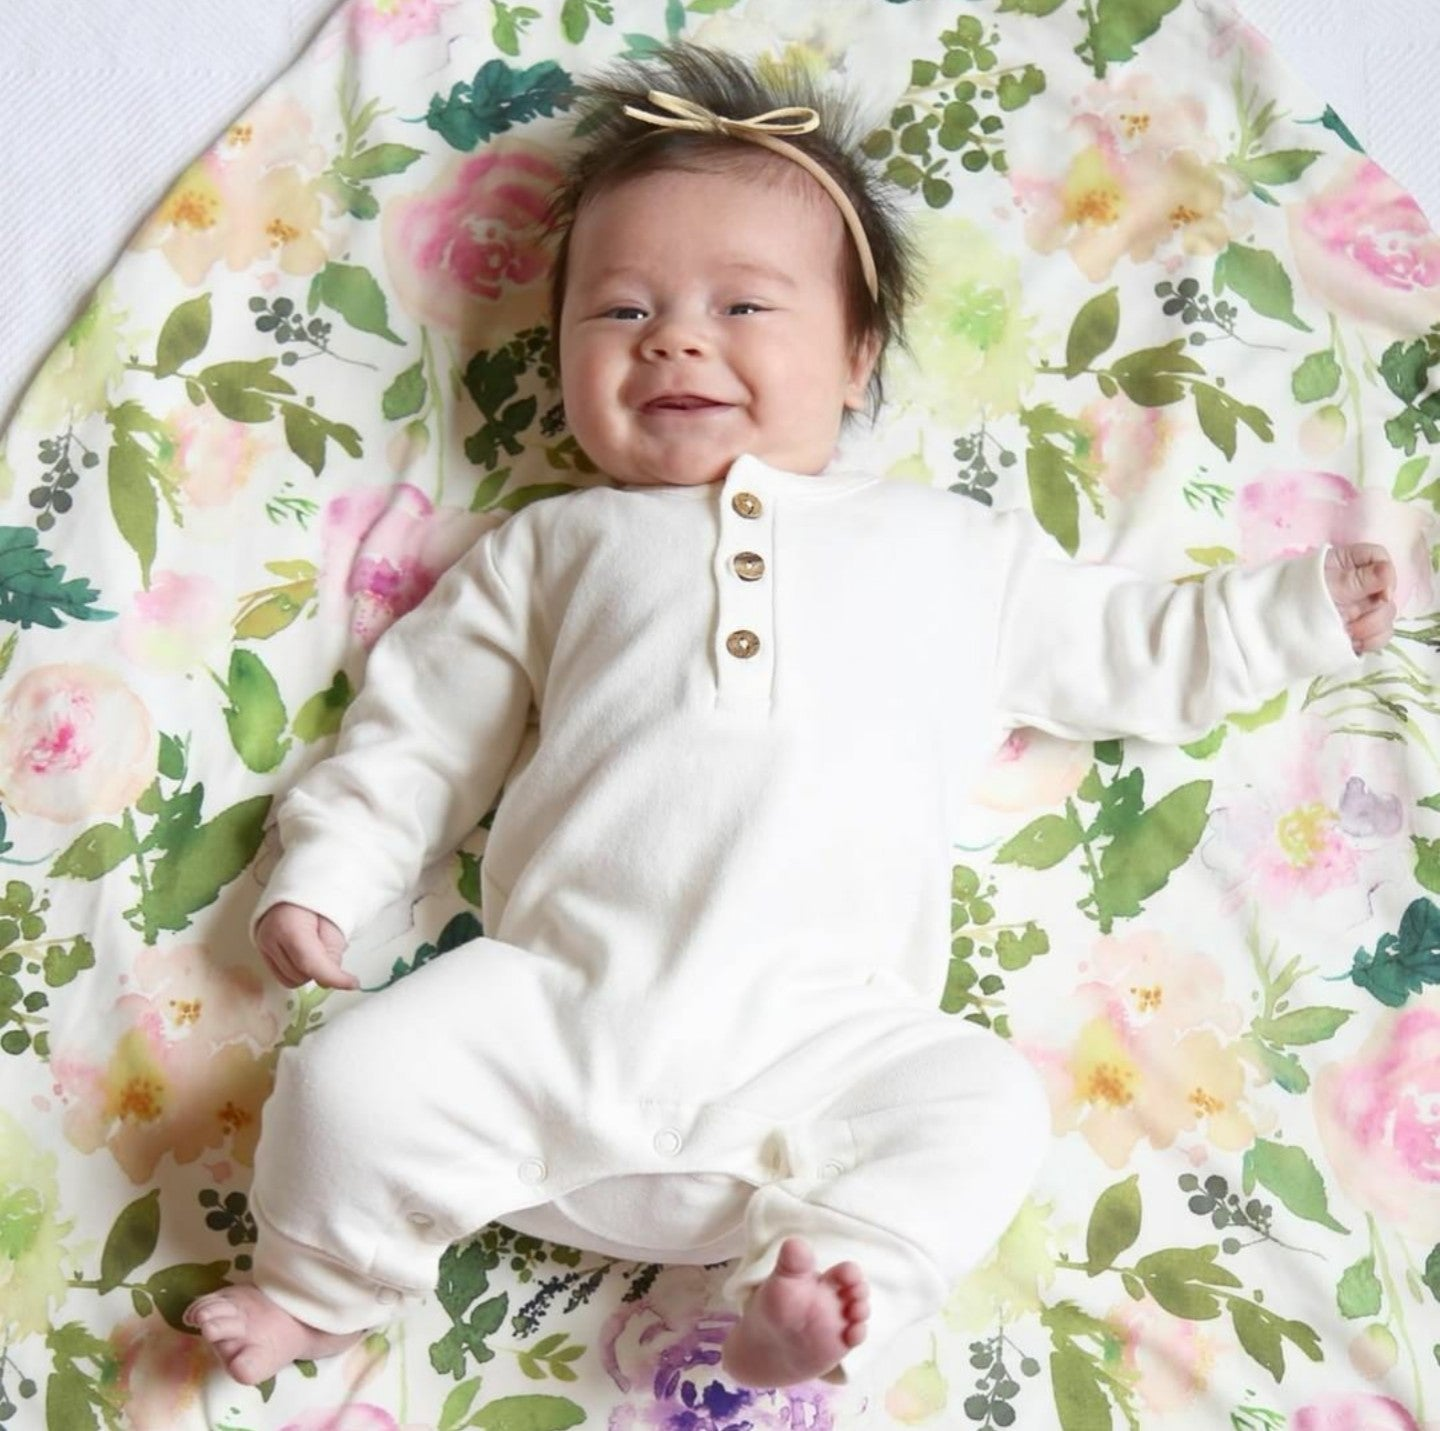 Lucy Lue Organics. Organic baby clothes, organic toddler clothes, organic cotton, toxin free clothing, eco friendly fabrics, eco-fashions, baby clothes, modern organic baby clothes, baby boy clothes, baby girl clothes, gender neutral baby clothes. Baby basics. Baby must haves